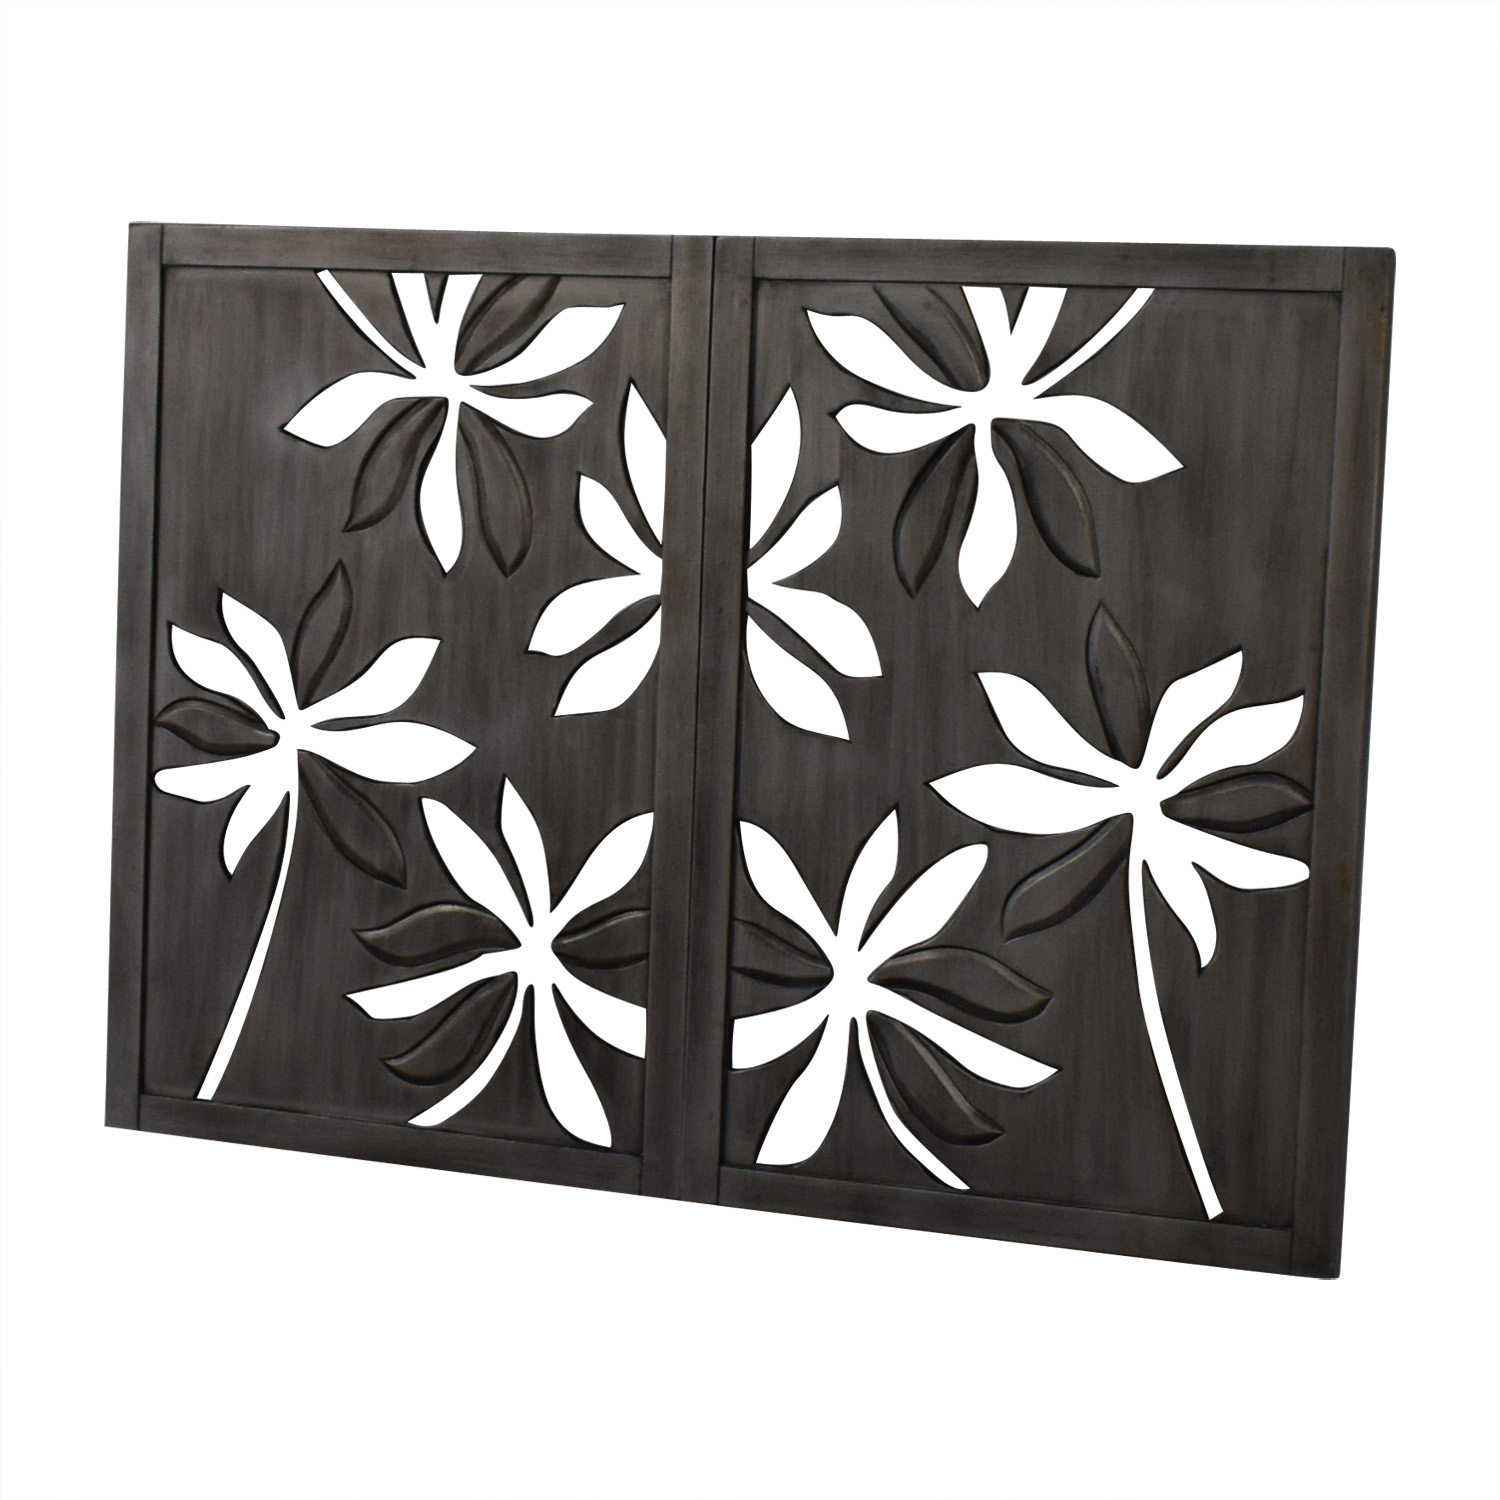 Pier 1 Pier 1 Open Carved Floral Flower Wall Art used